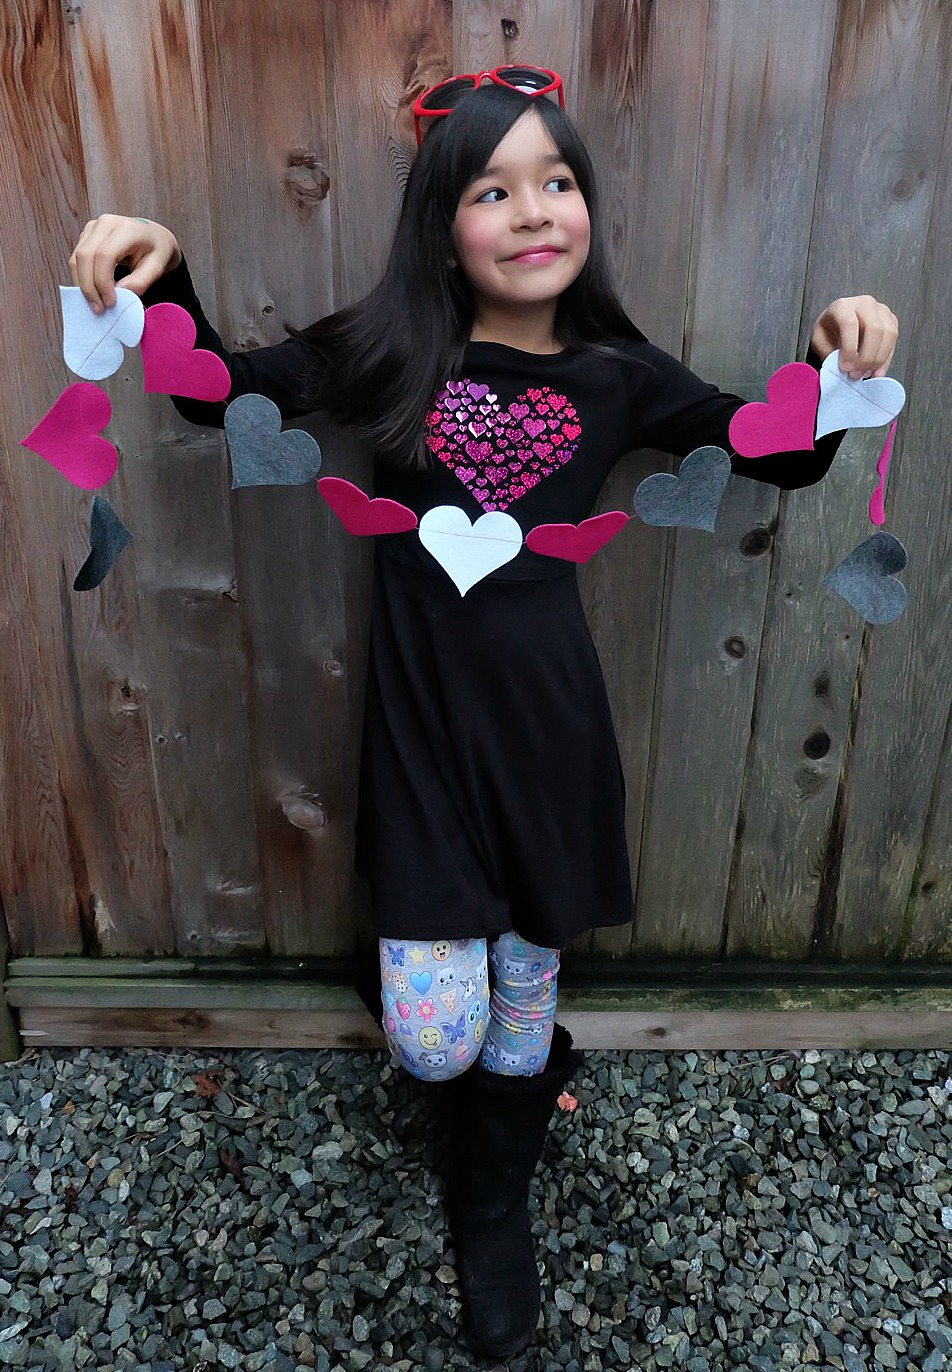 Decorate for Valentine's Day with this easy 5 minute Felt DIY Heart Garland! Customize this project with different colors of felt. So cute not only for decorating the home but also to decorate a classroom or to use as a photo prop! Cut your hearts by hand or with a Cricut Maker. A great first sewing project for kids! #Cricut #craft #ValentinesDay